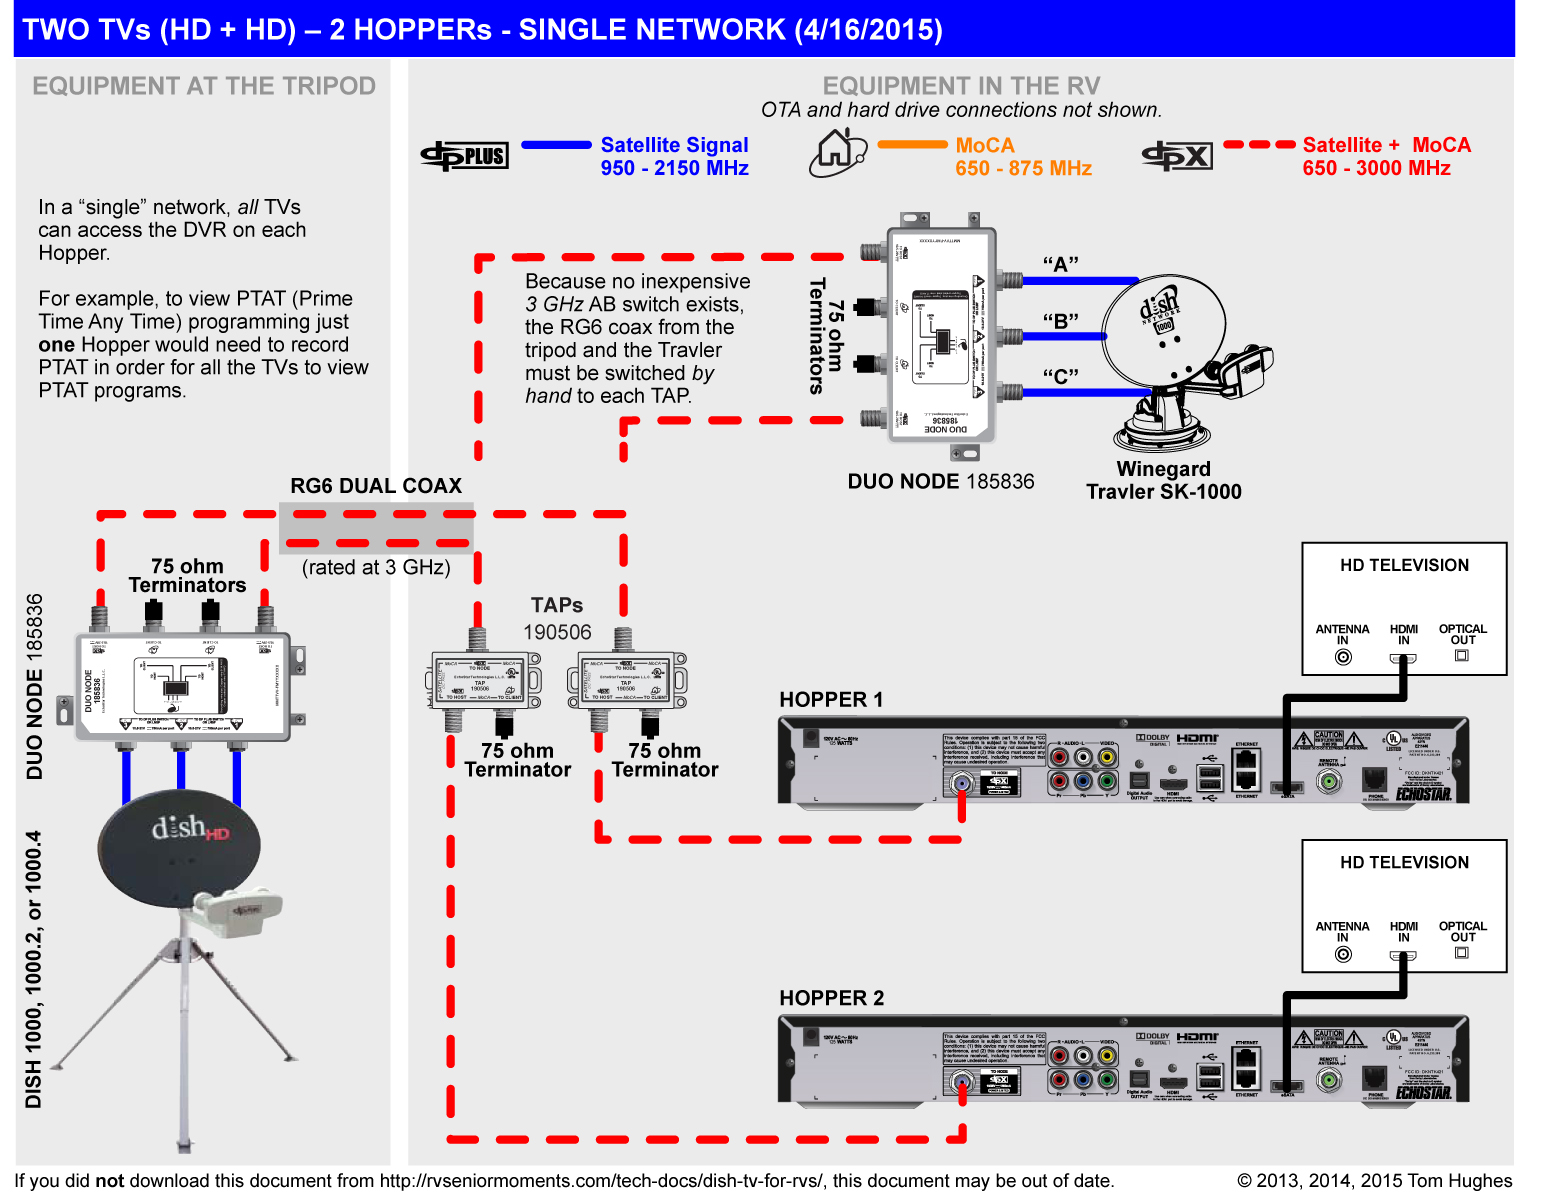 210_dish_twotvs_two_hoppers_single_network_hdhd720dpi directv whole home dvr wiring diagram directv free wiring dish network wiring diagrams dual tuner at gsmx.co